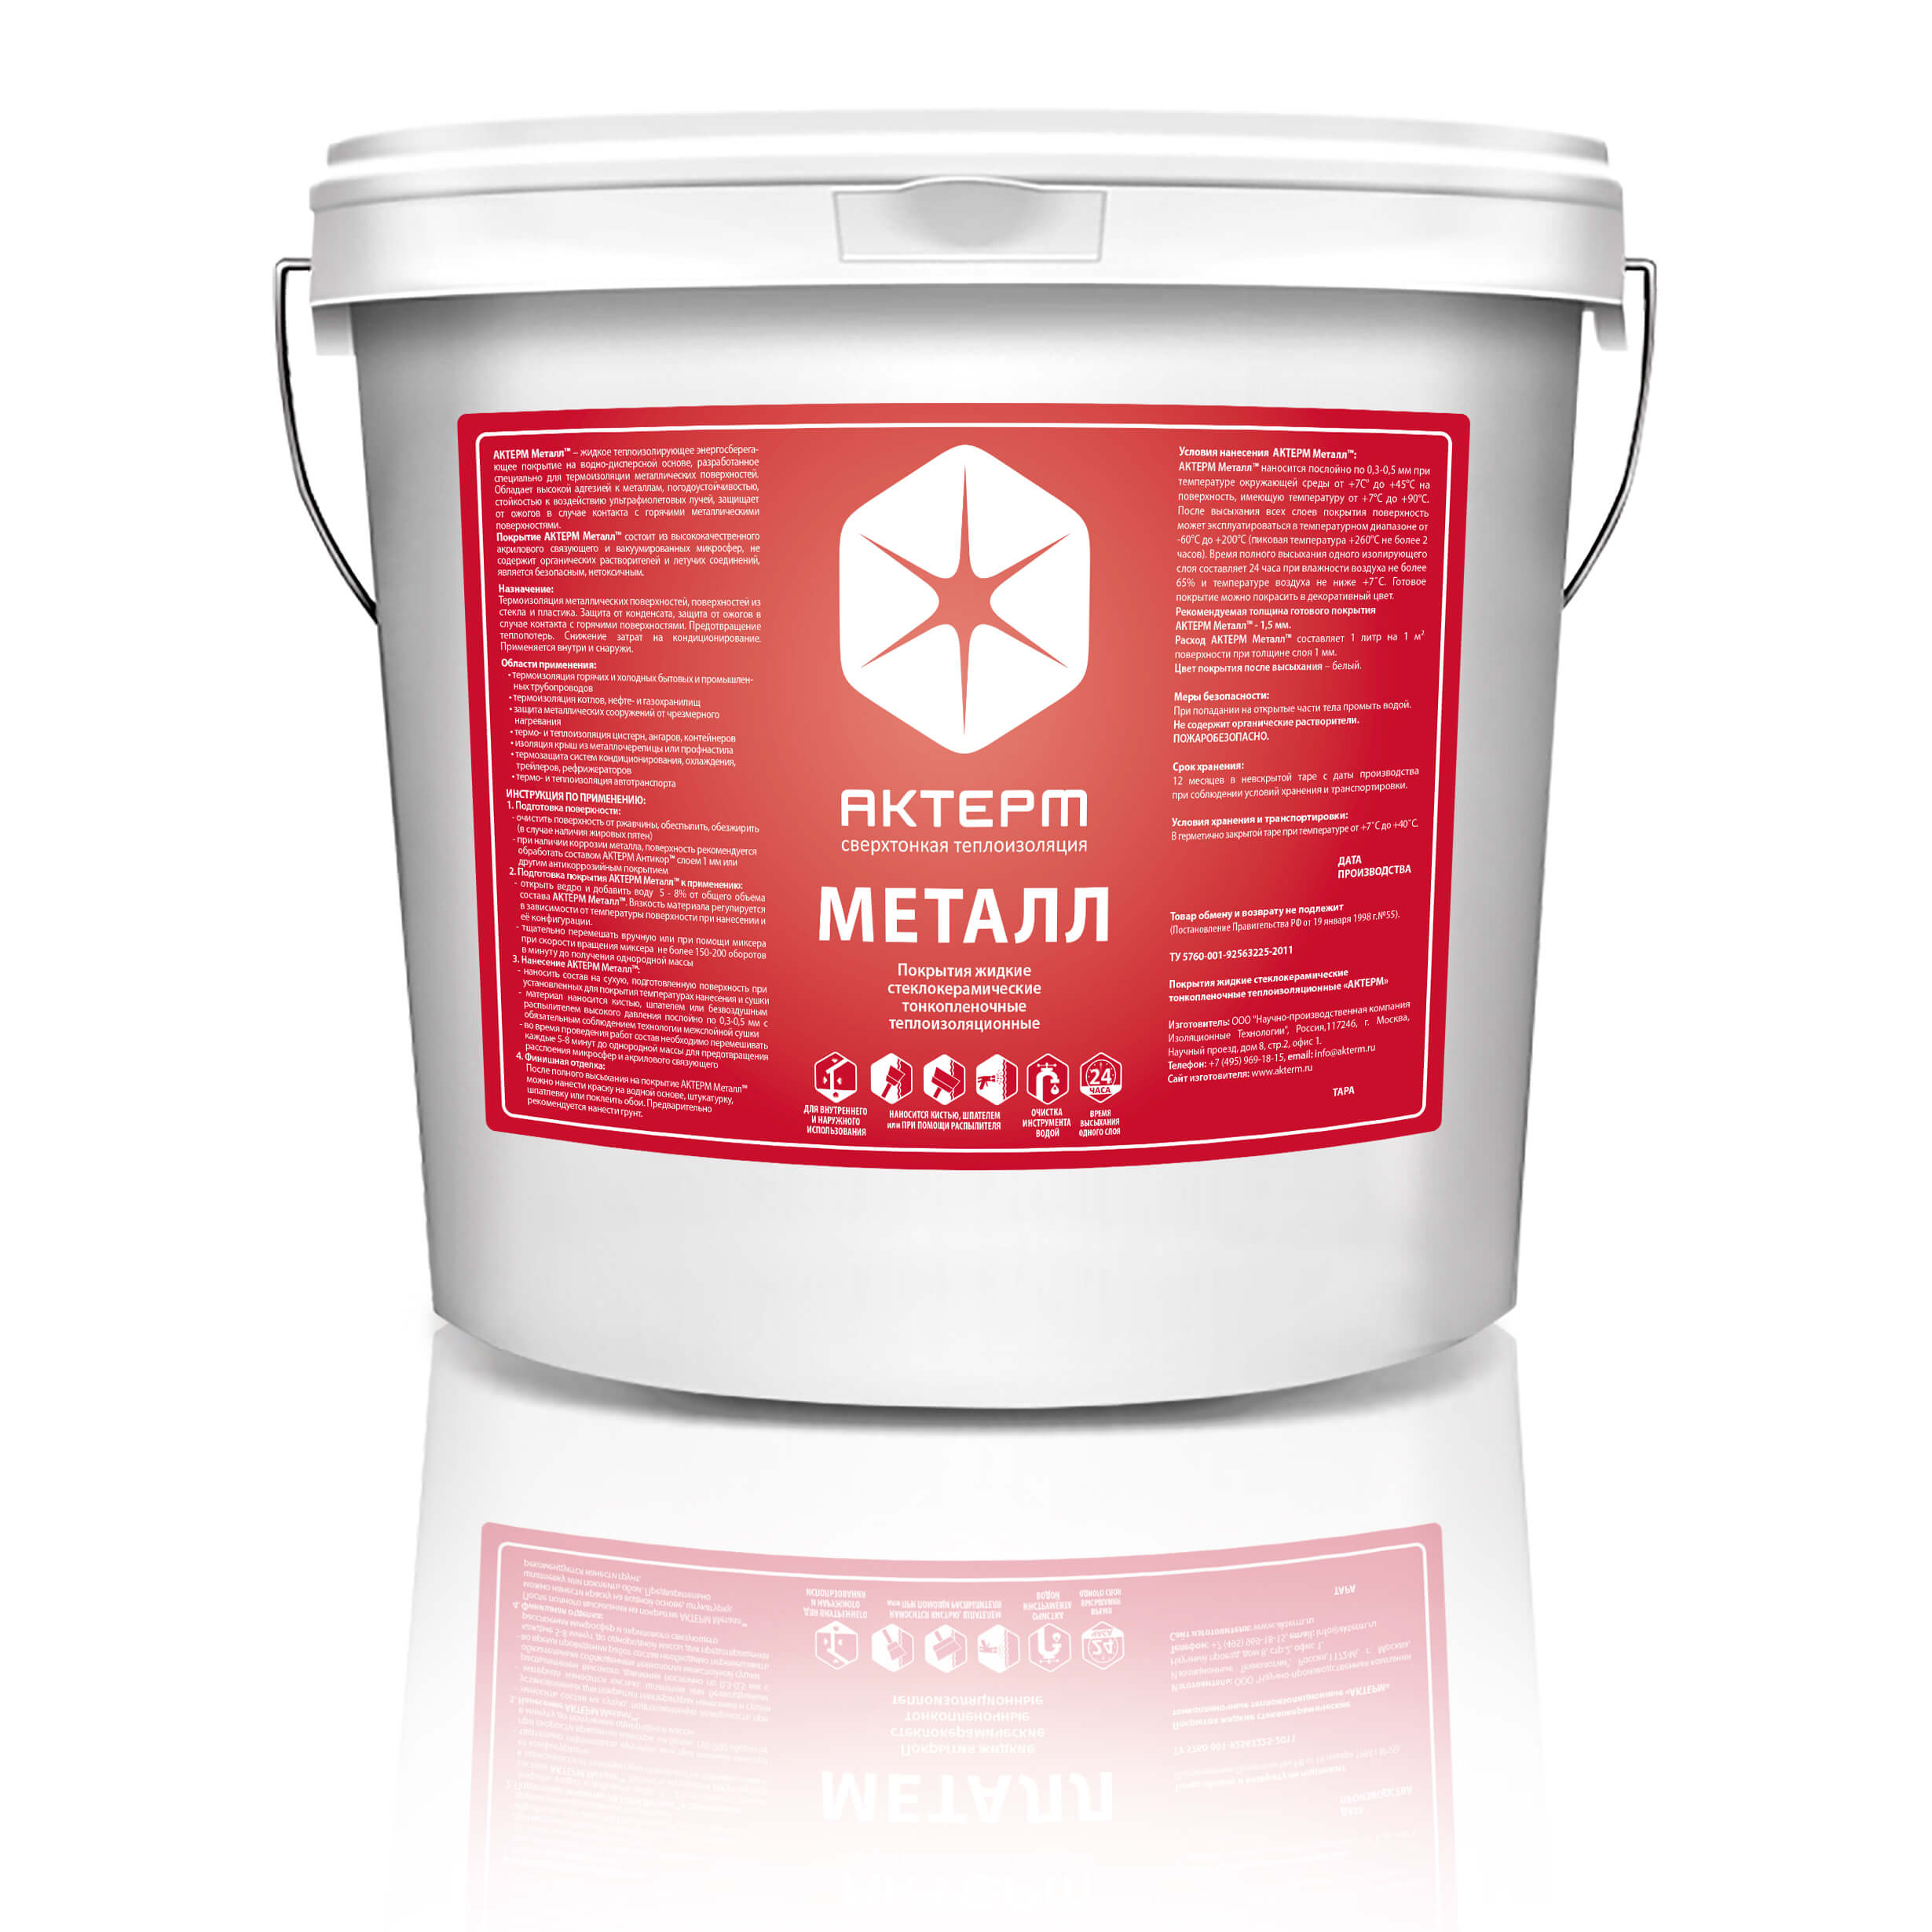 AKTERM Metal™ Liquid Thermal Insulation Coating for Metal Surfaces